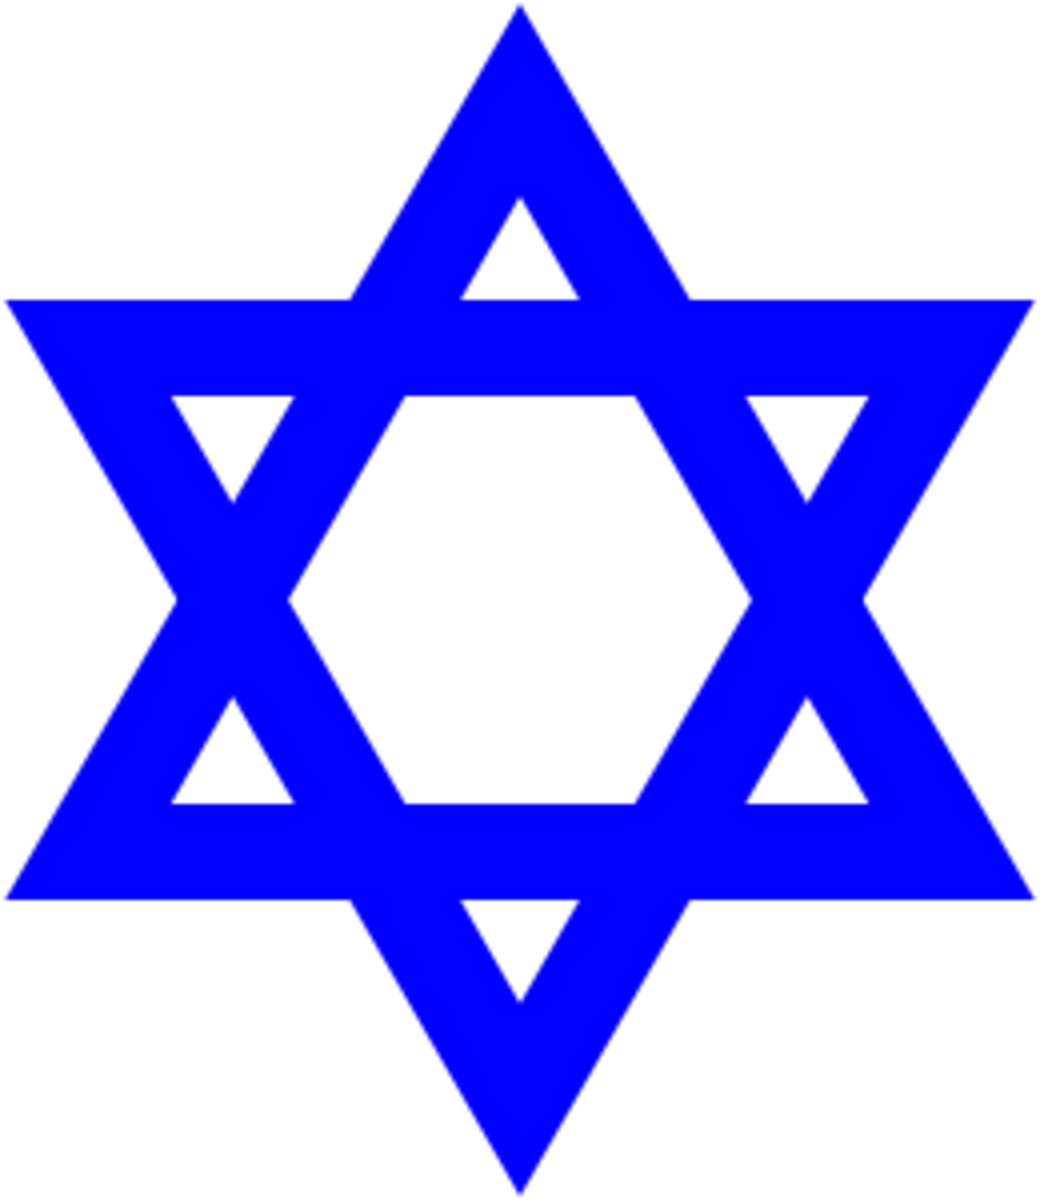 Jews, Muslims and Christians all have the same forefather, Abraham, yet have interpreted the teachings of the Bible in different ways.